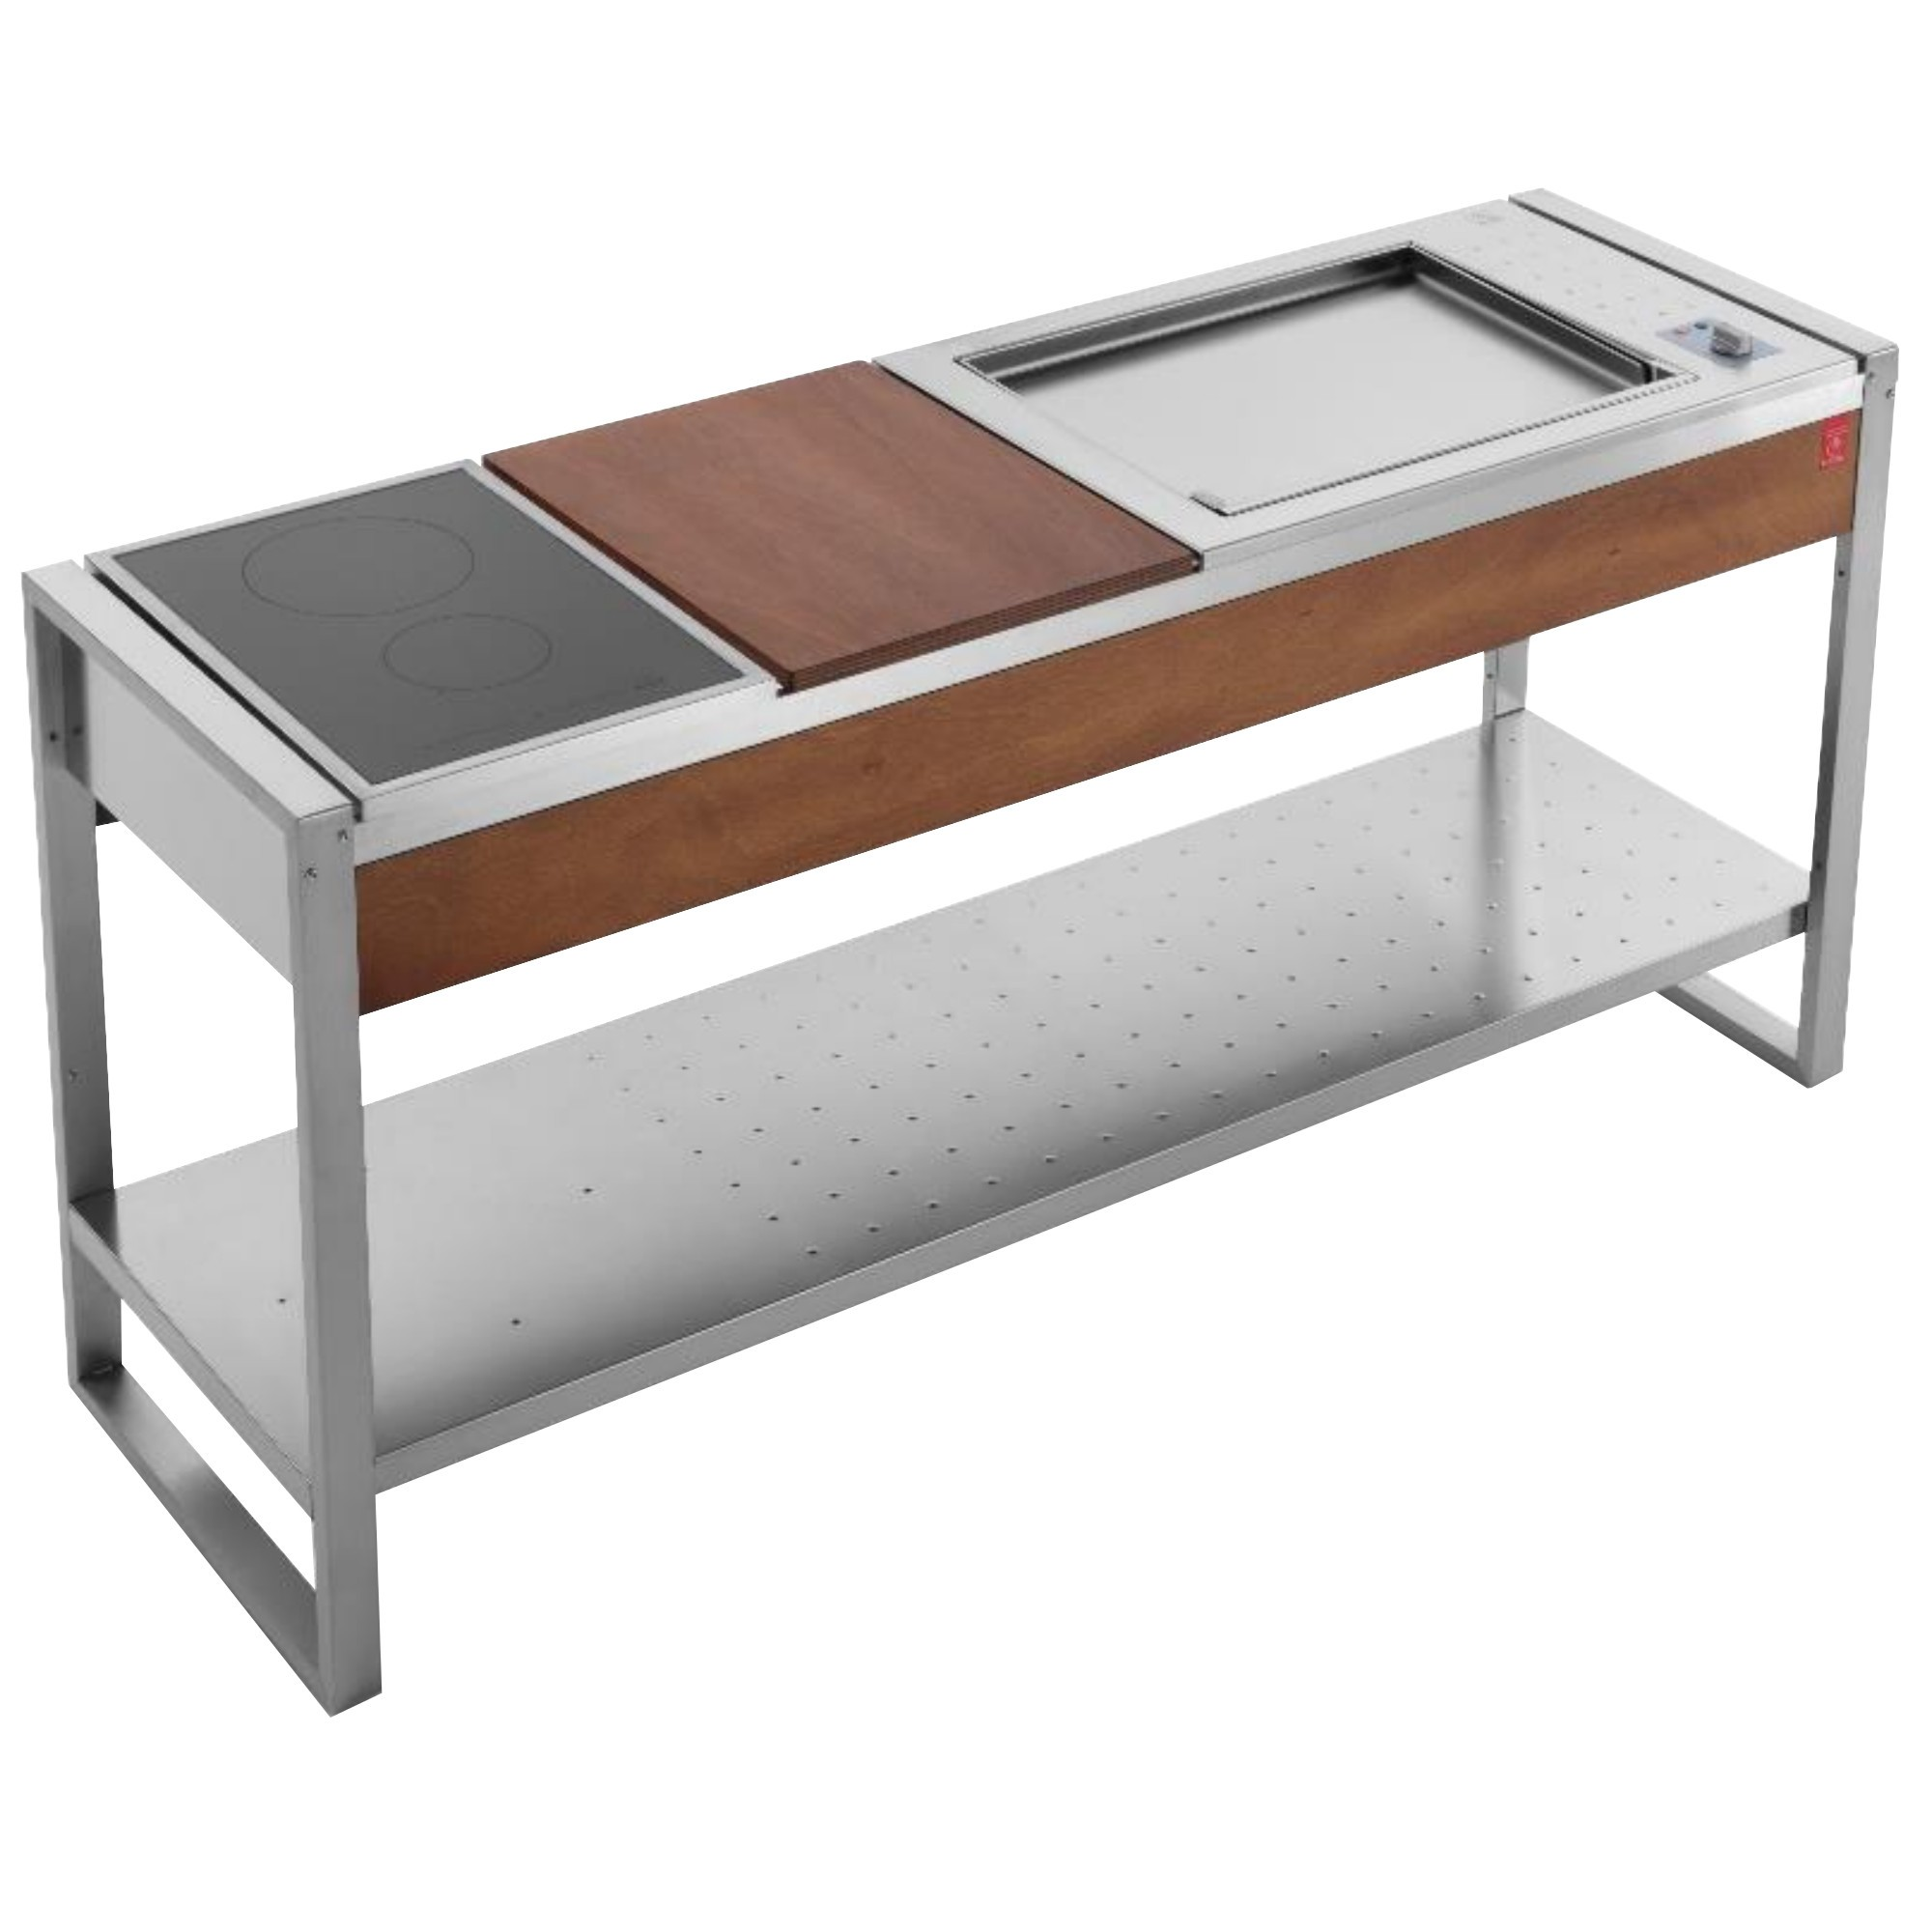 Oasi 183 Outdoor Kitchens Cooking System Pla Net Masonionline